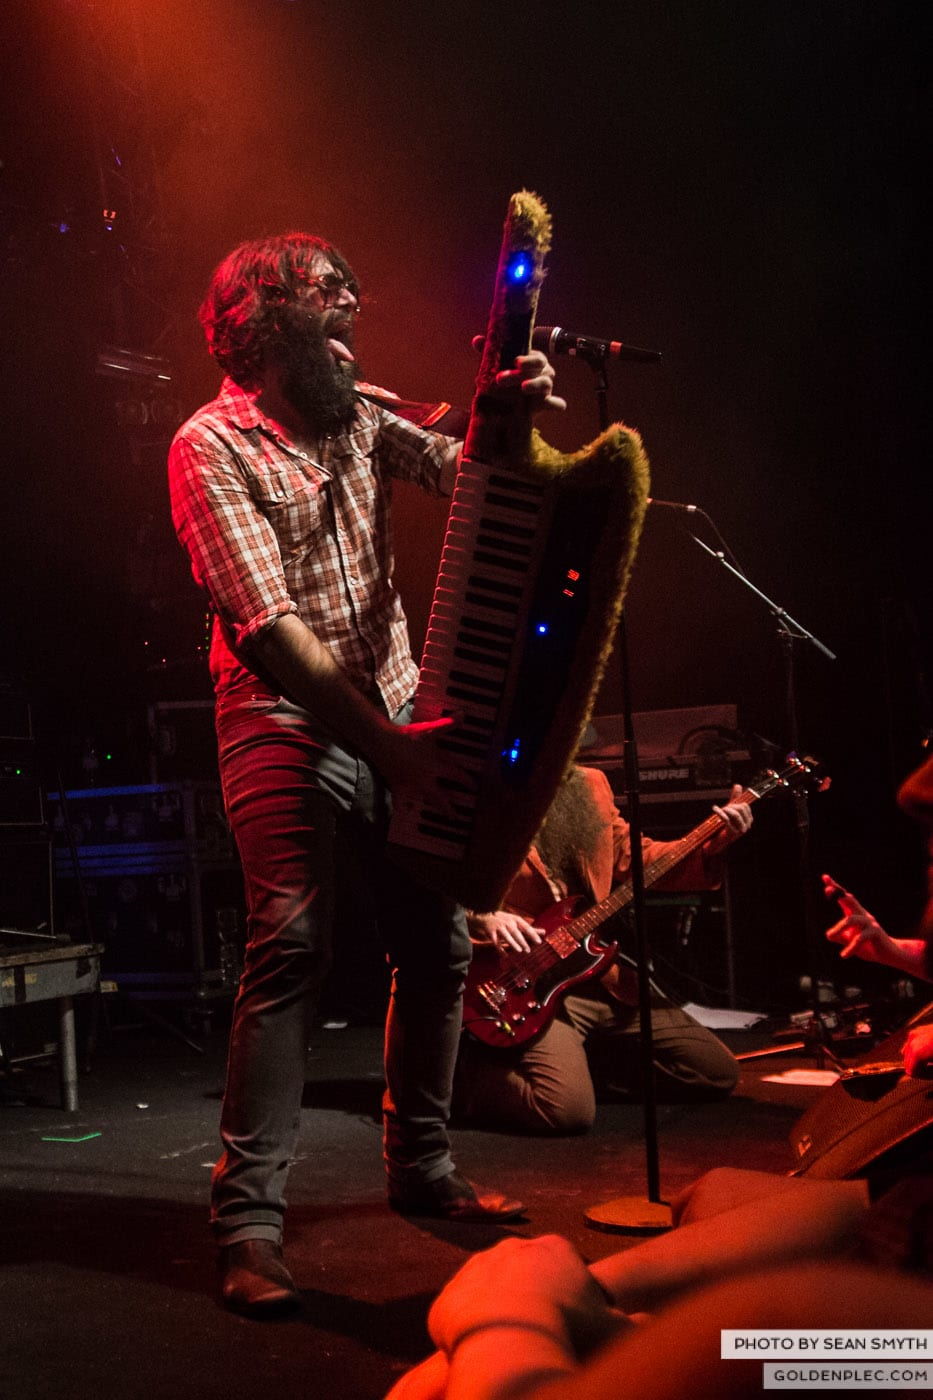 the-beards-at-button-factory-by-sean-smyth-10-12-14-41-of-49